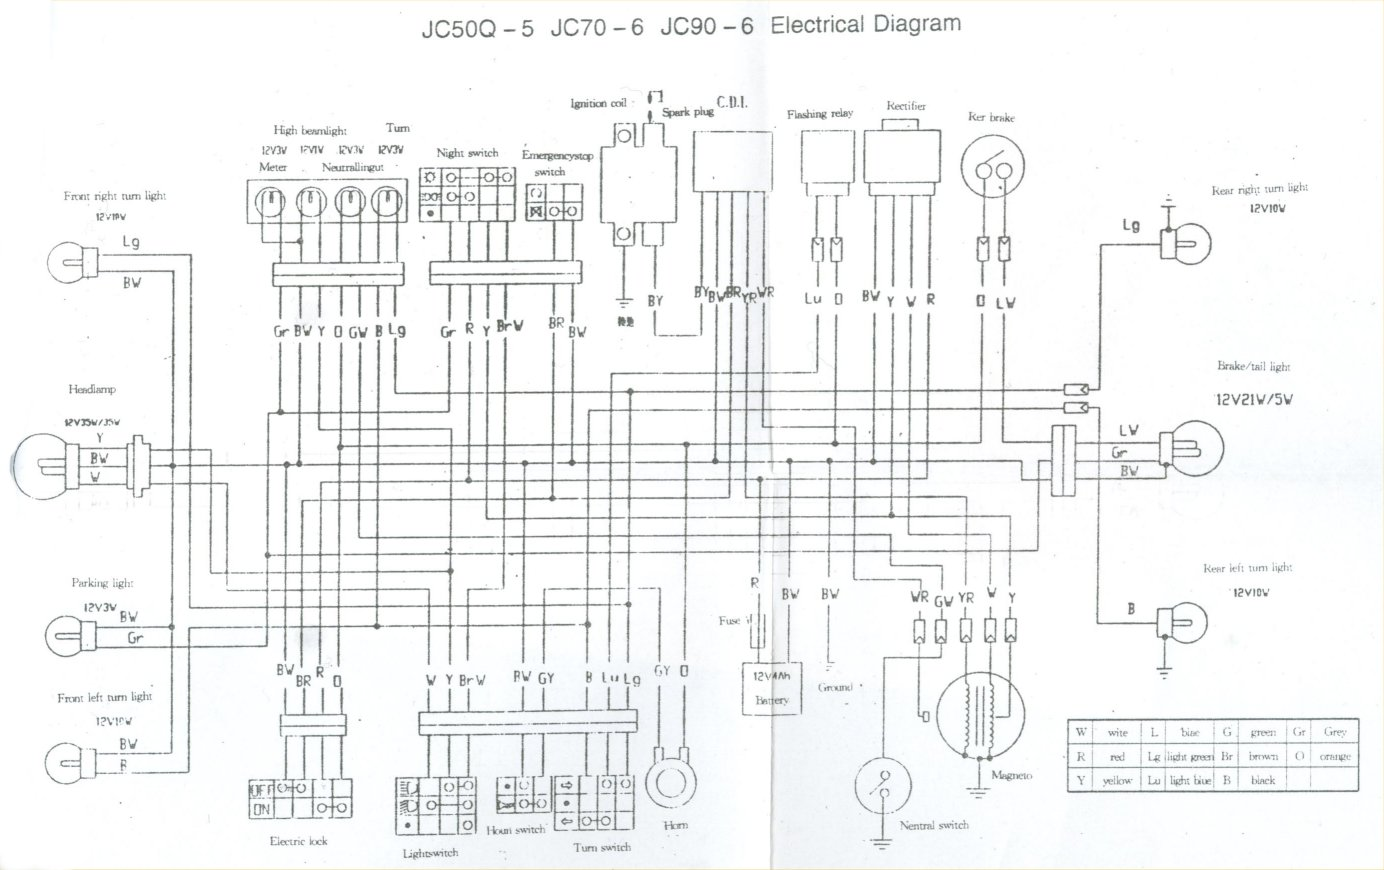 1027685 Xr200 Lights in addition Kazuma 4 Wheelers Ignition Wiring Diagram in addition Scooter Scoot Ngo Wiring Wiring Diagrams additionally Cen Tech Wiring Harness Diagram Motorcycle together with Auranthe. on pocket bike wiring diagram